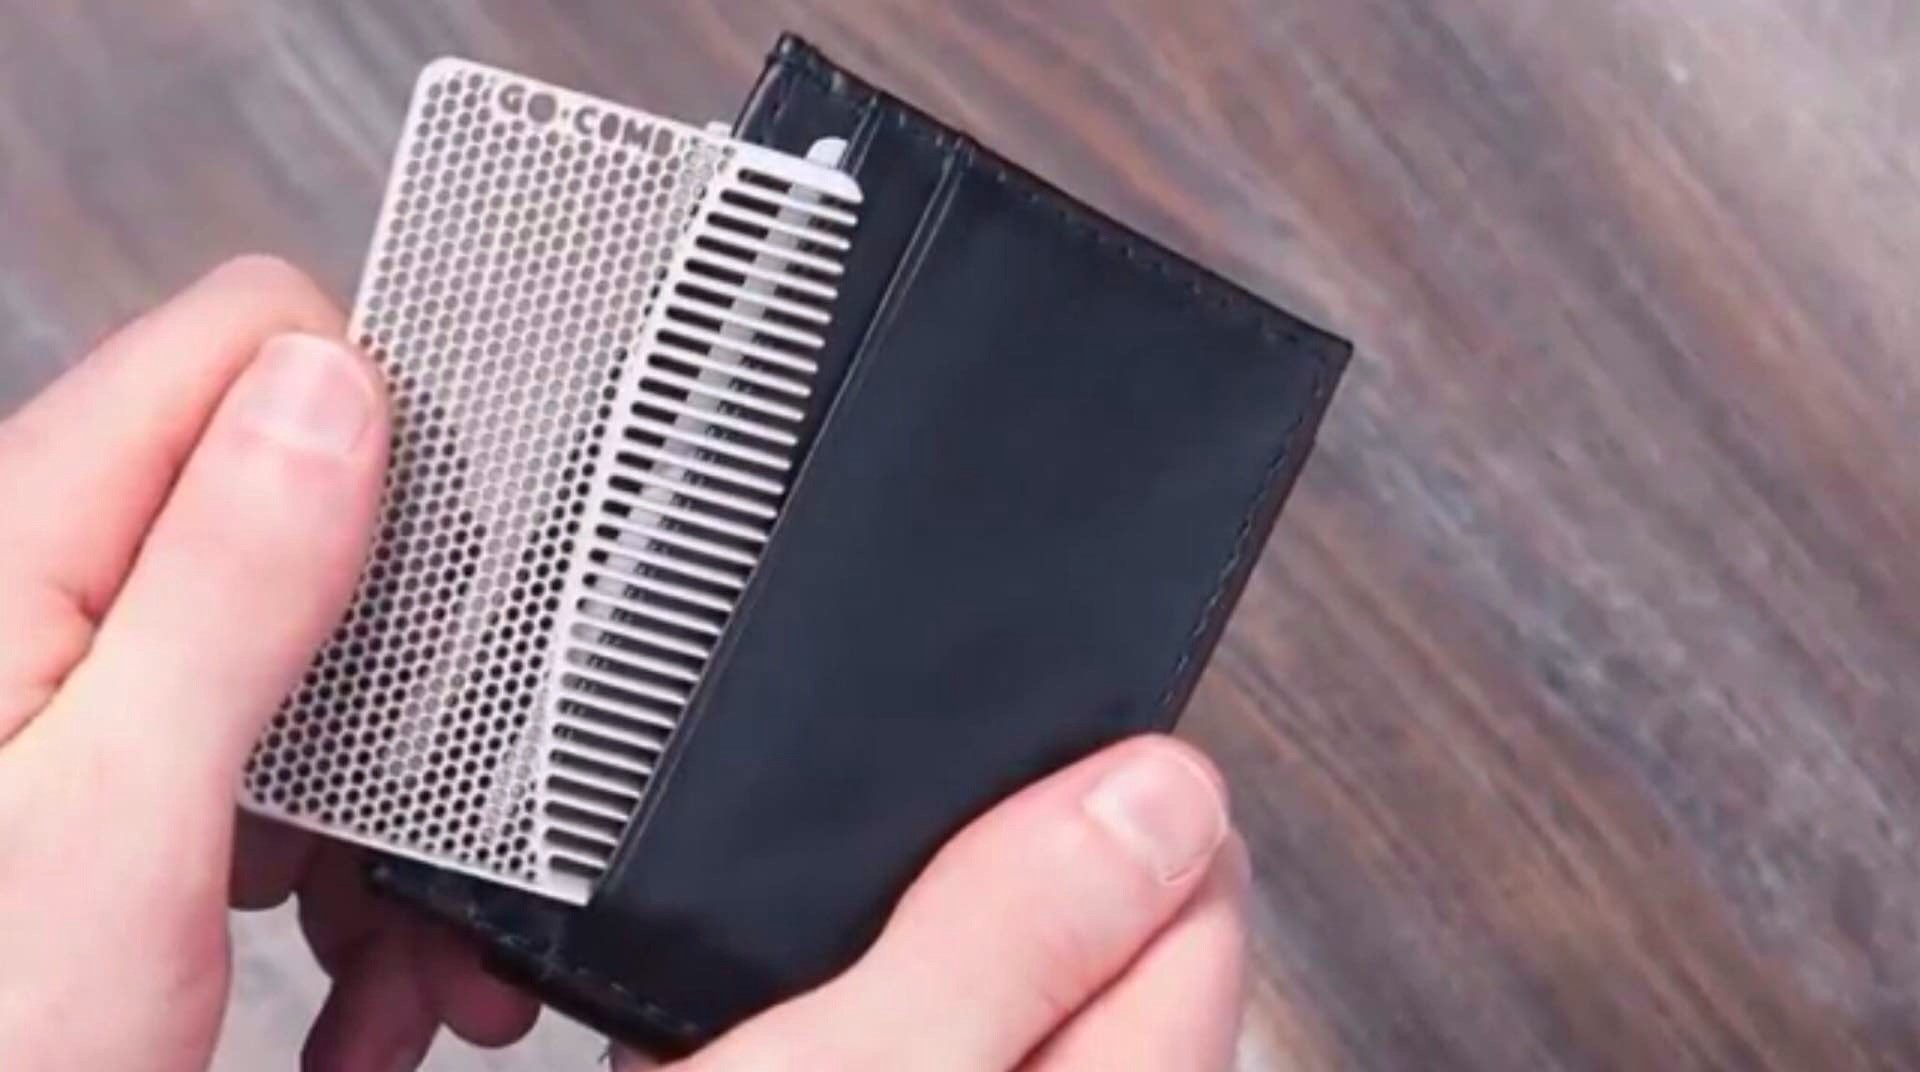 The Go-Comb wallet-sized comb. ($9–$16, depending on color)